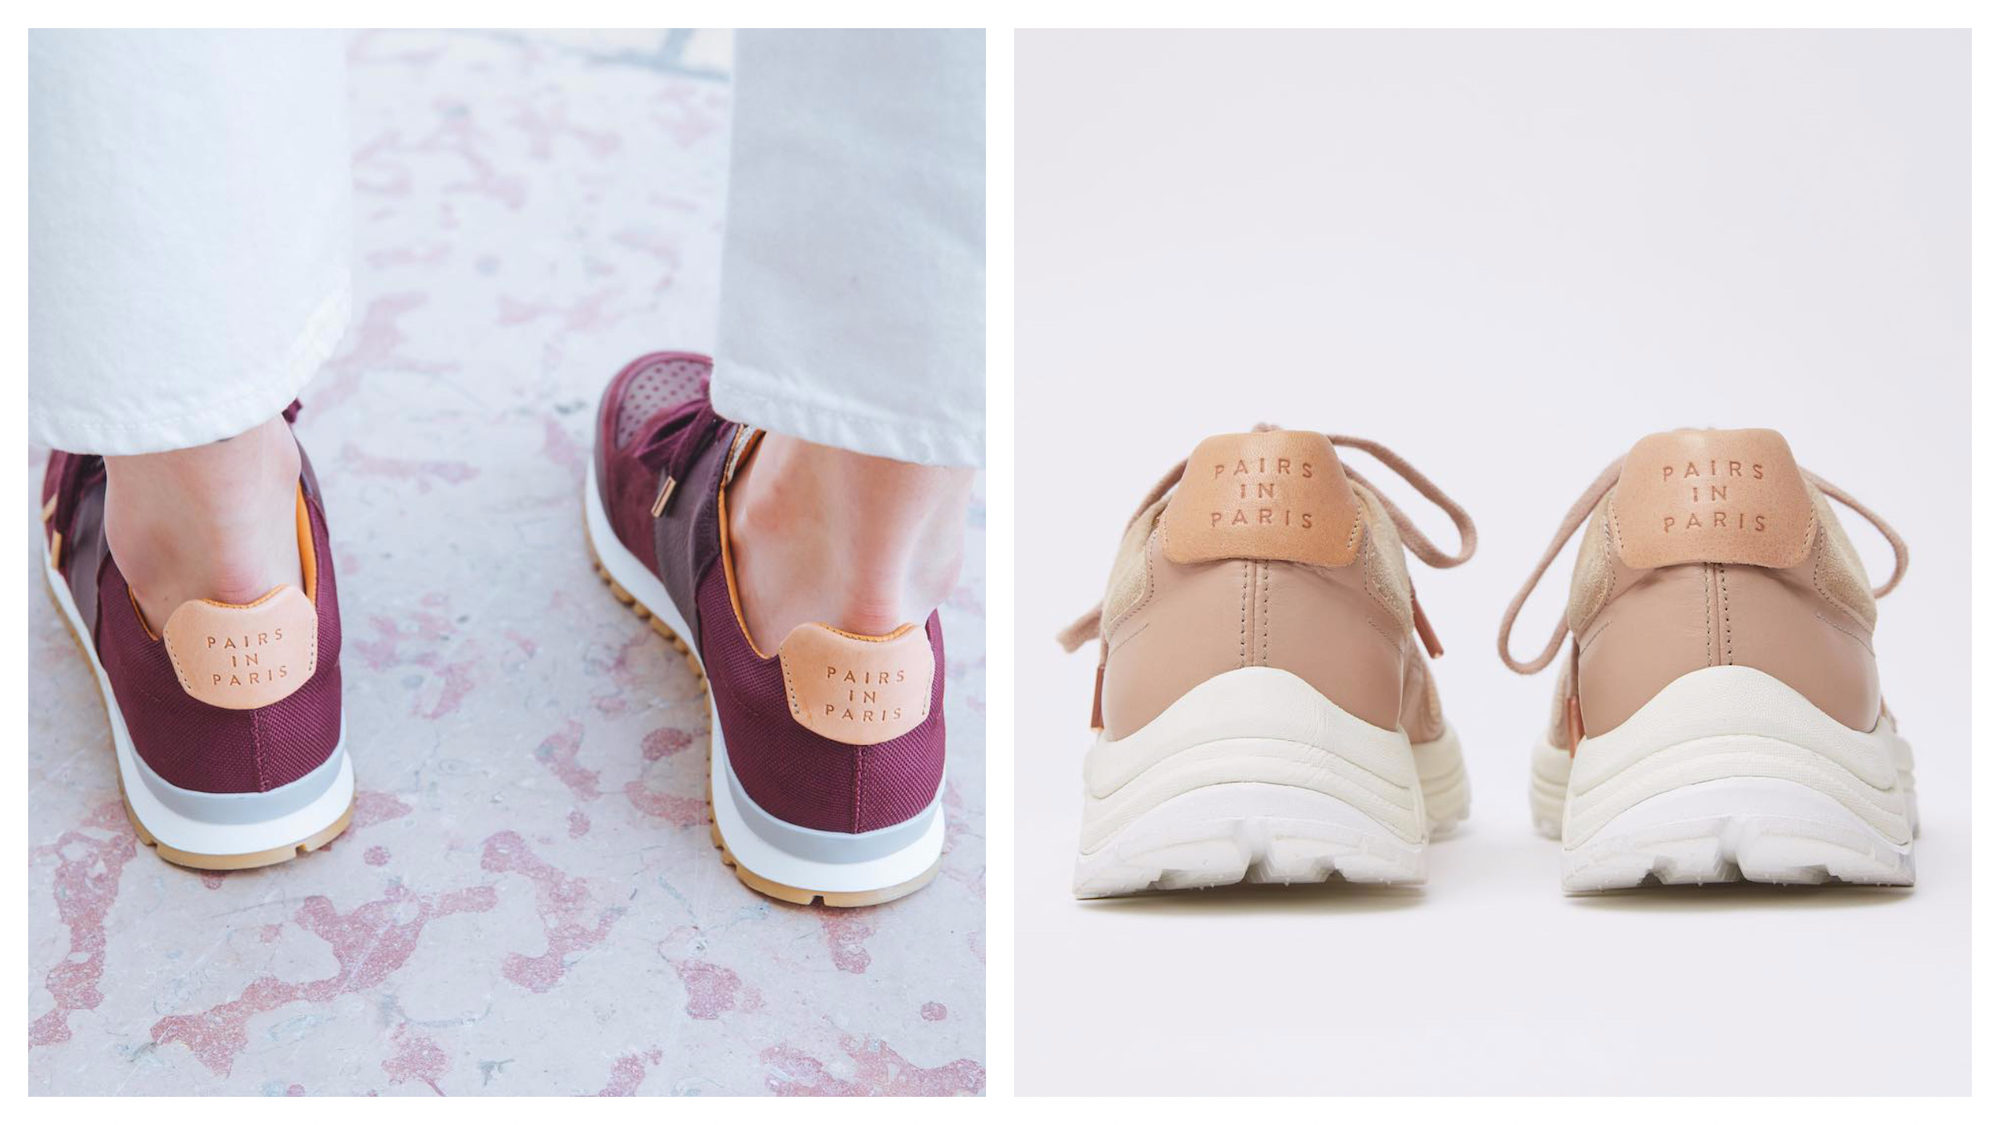 The Parisian shoe brand to shop is Paris in Paris, for its comfortable sneakers that come in different colors like this dark red ones (left) and beige pair (right).